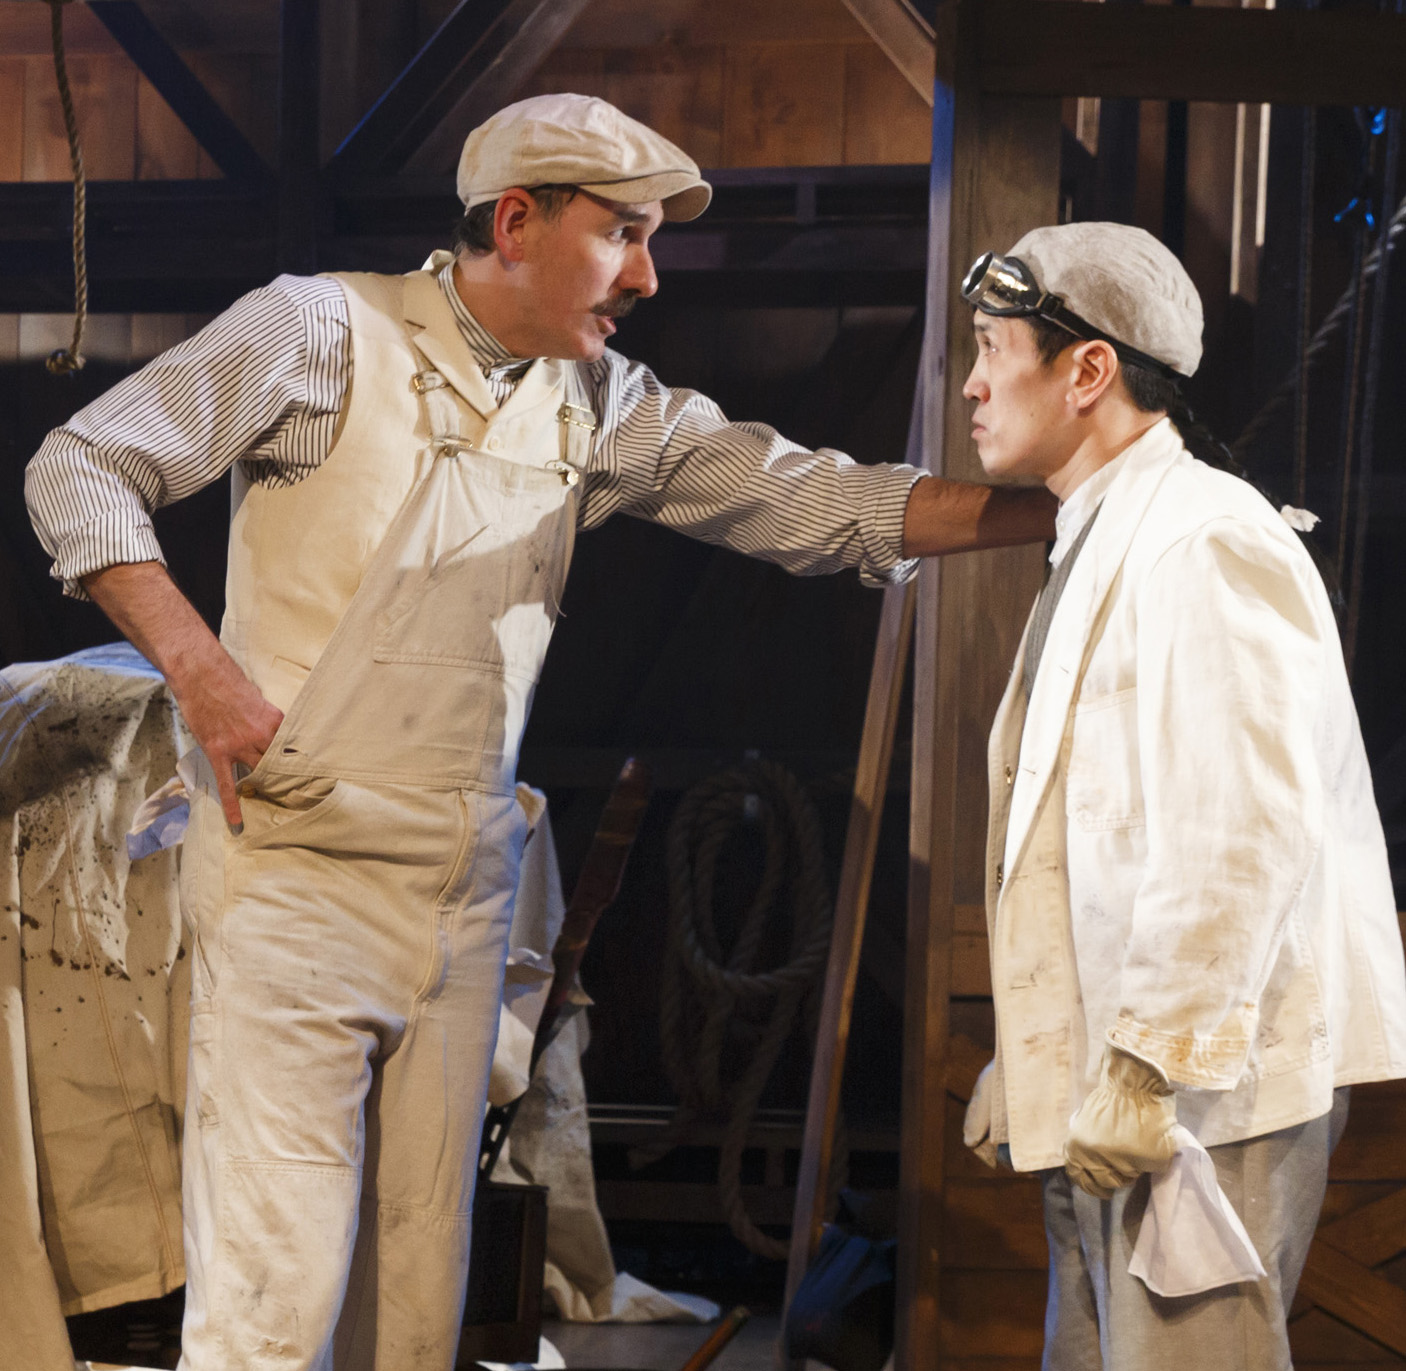 Lochtefeld (left) with Brian Lee Huynh as Hong Sling. Photos by Joan Marcus.